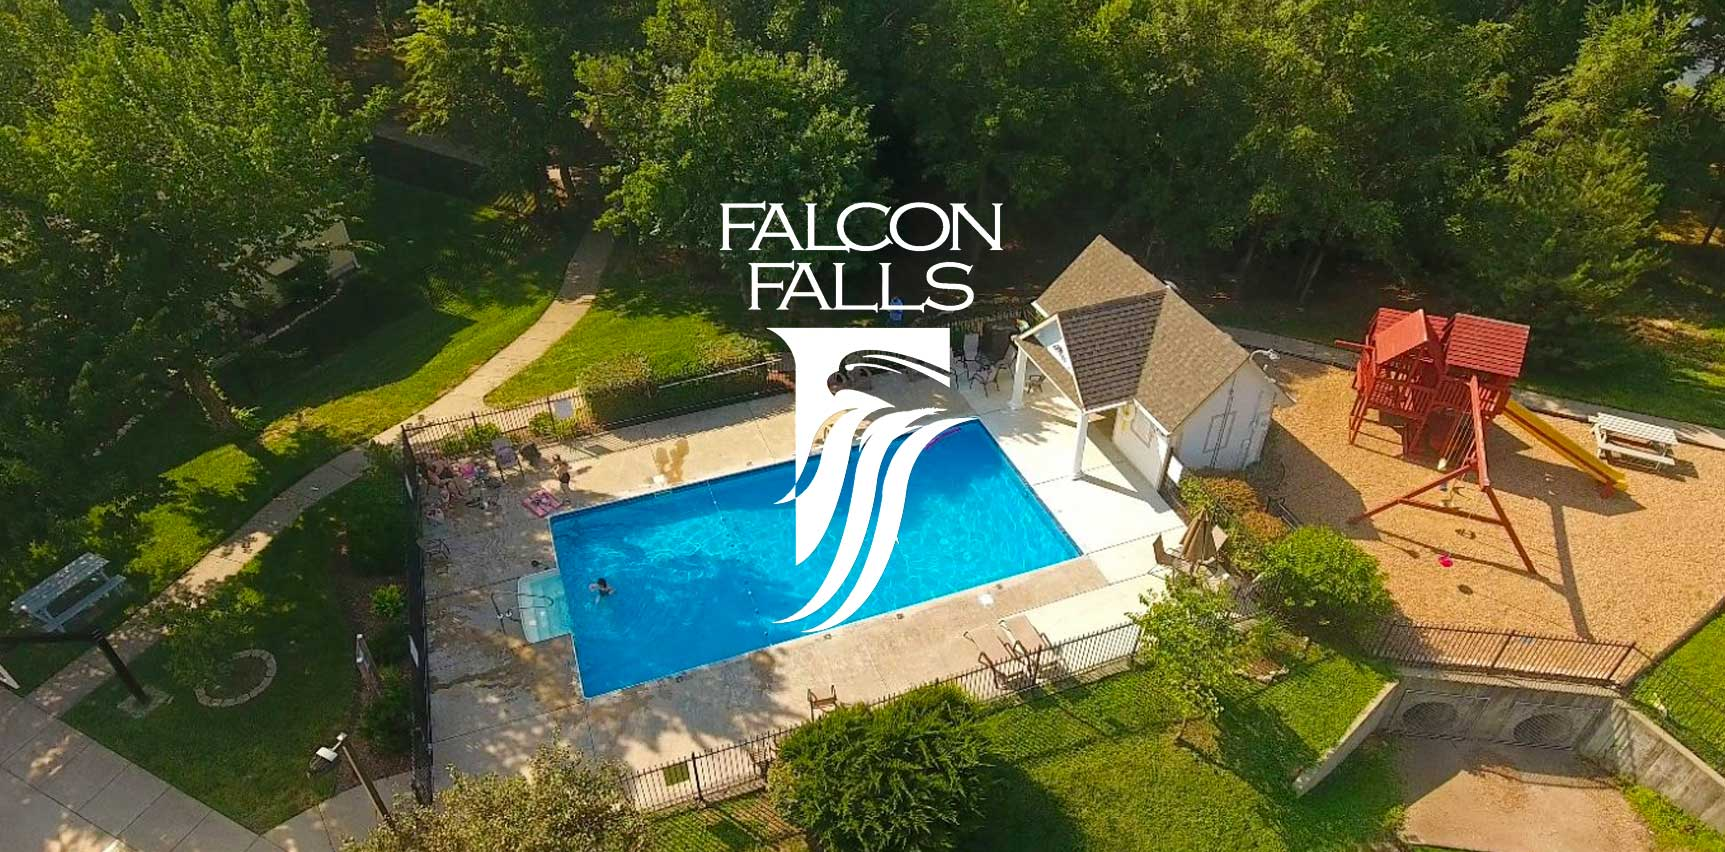 House for sale: Falcon Falls